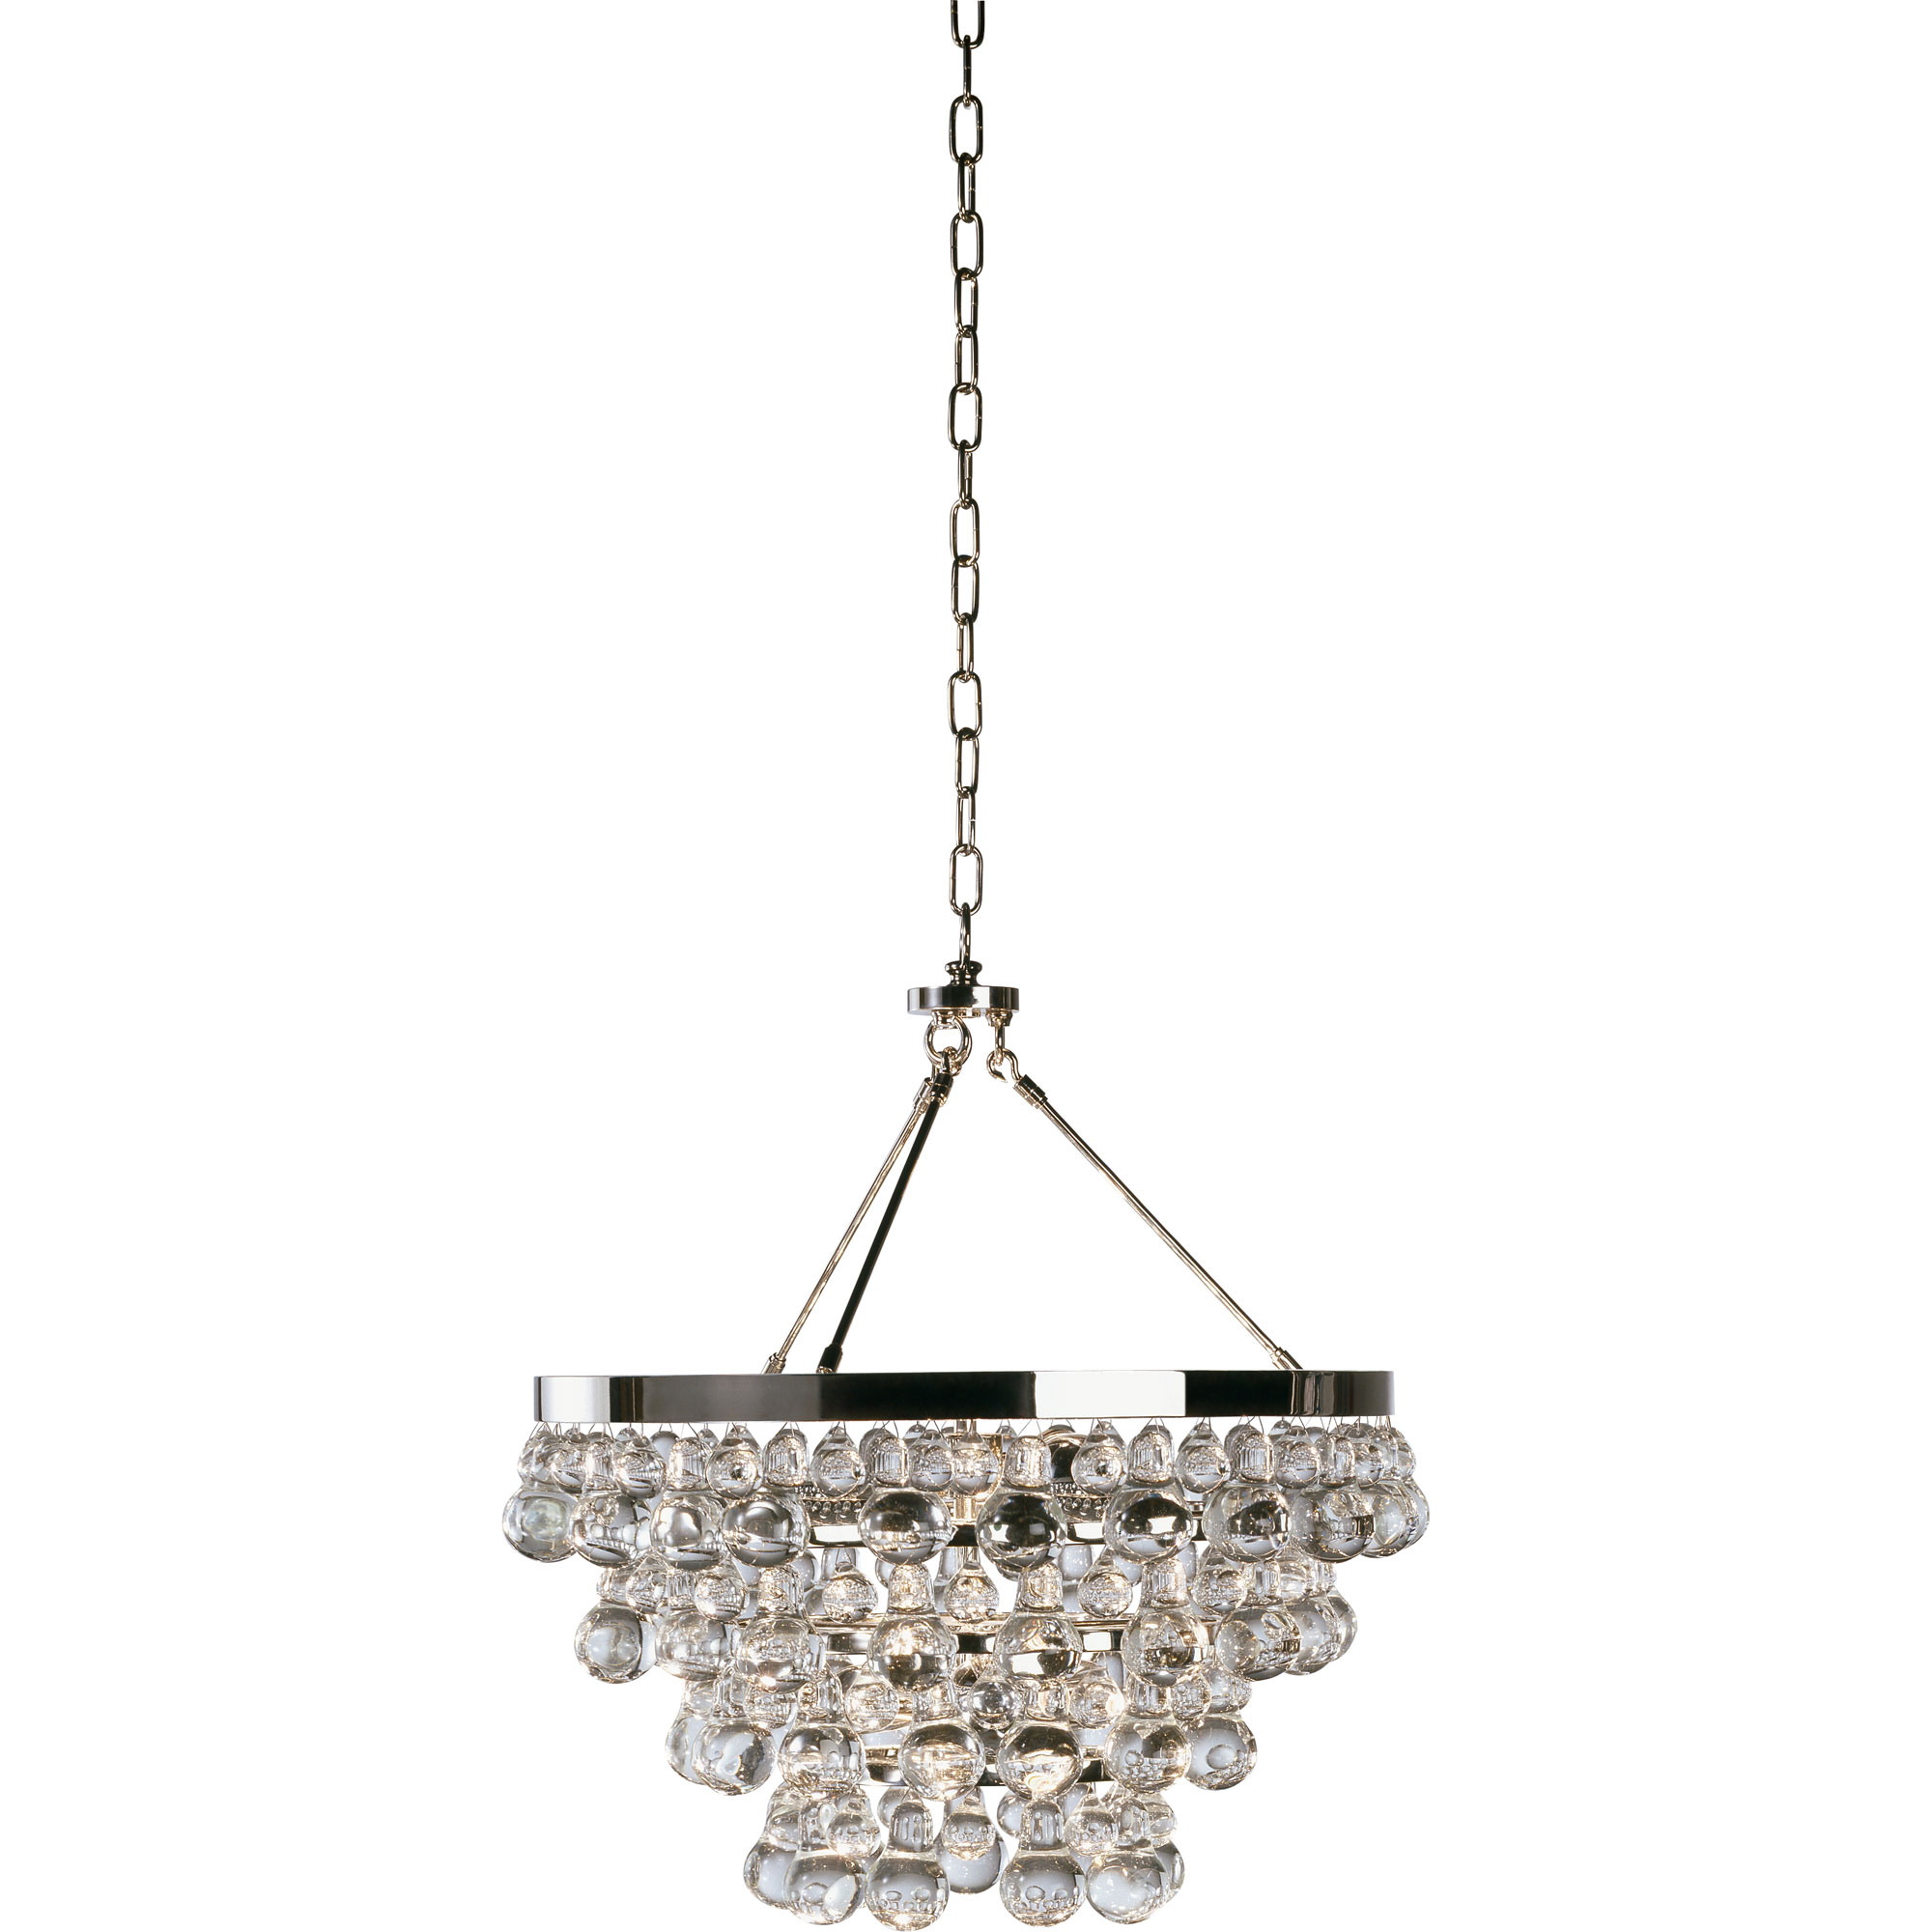 Convertible Chandelier by Robert Abbey